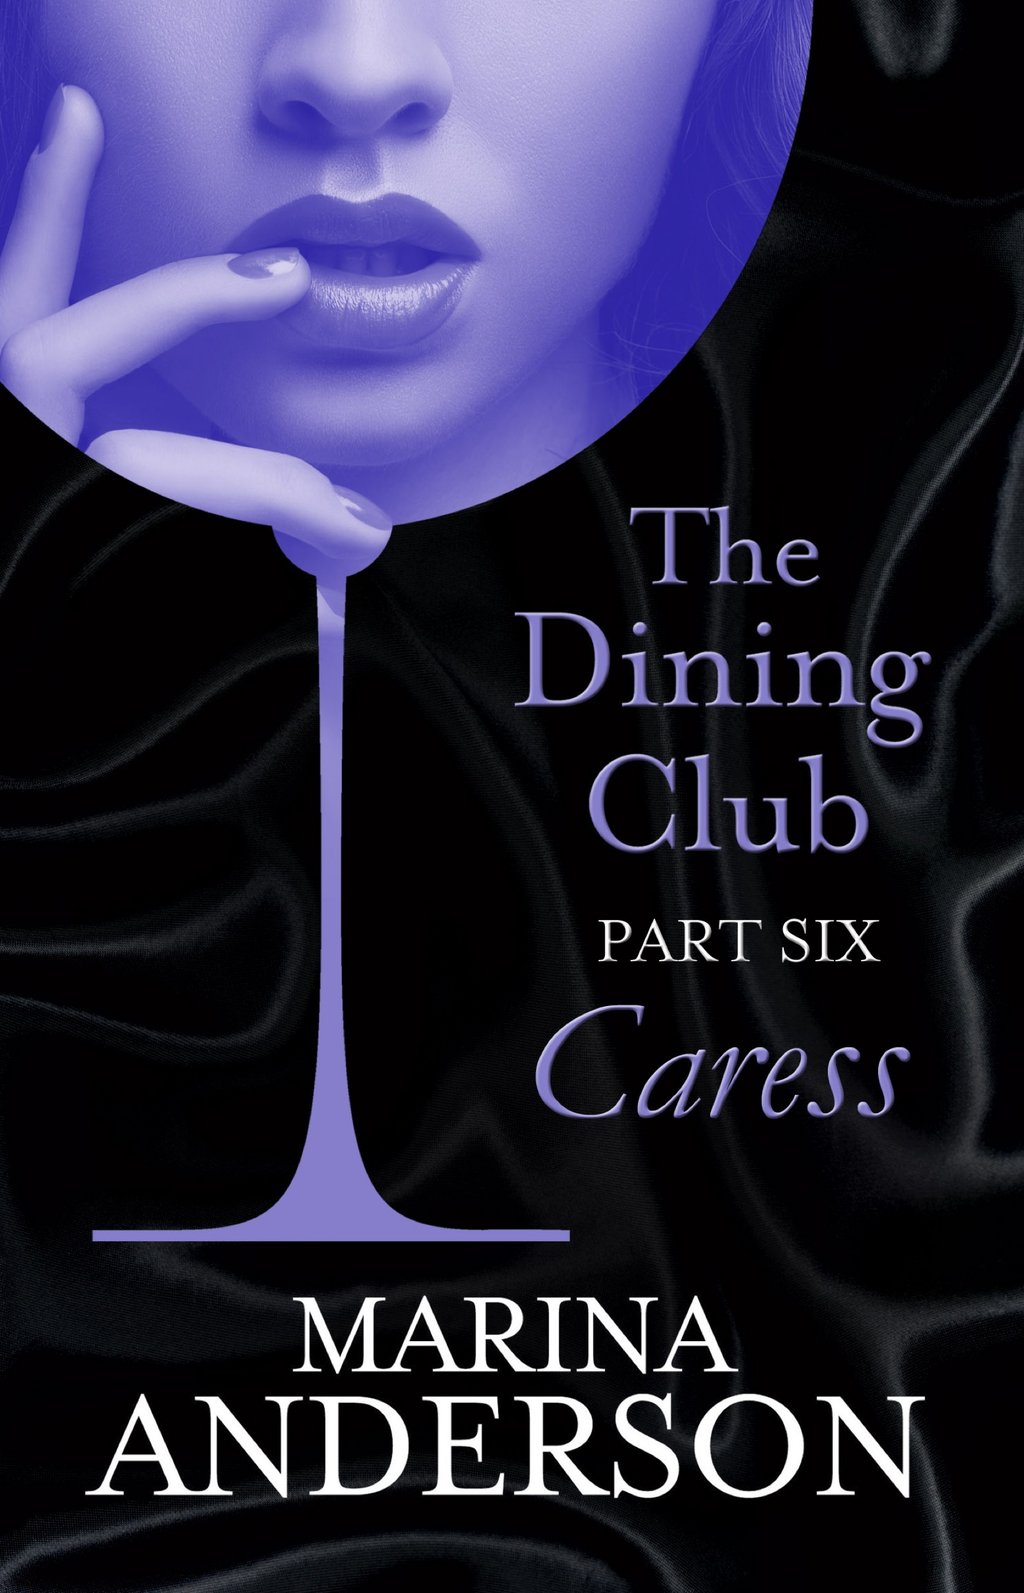 The Dining Club: Part 6